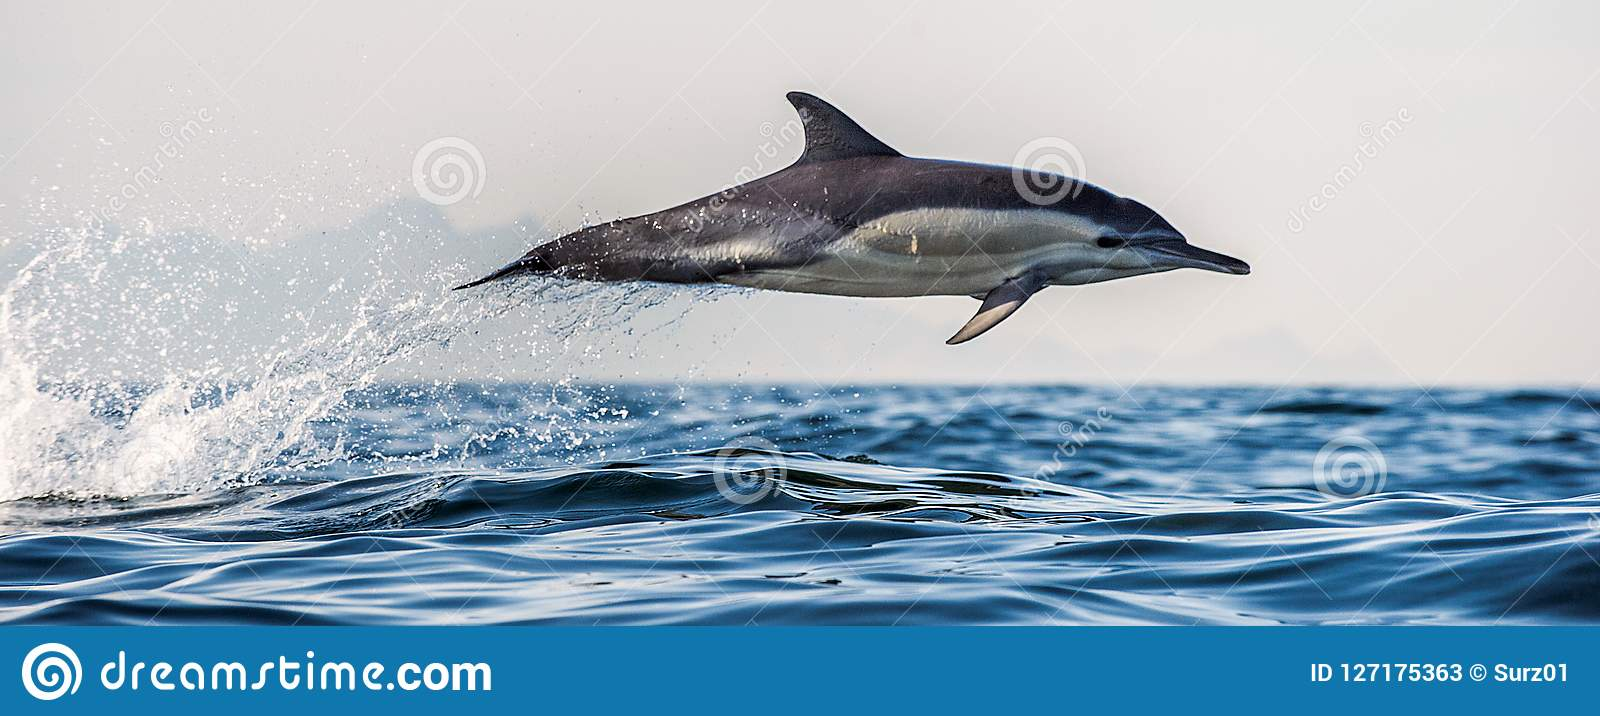 Dolphin jumping out of water. The Long-beaked common dolphin.